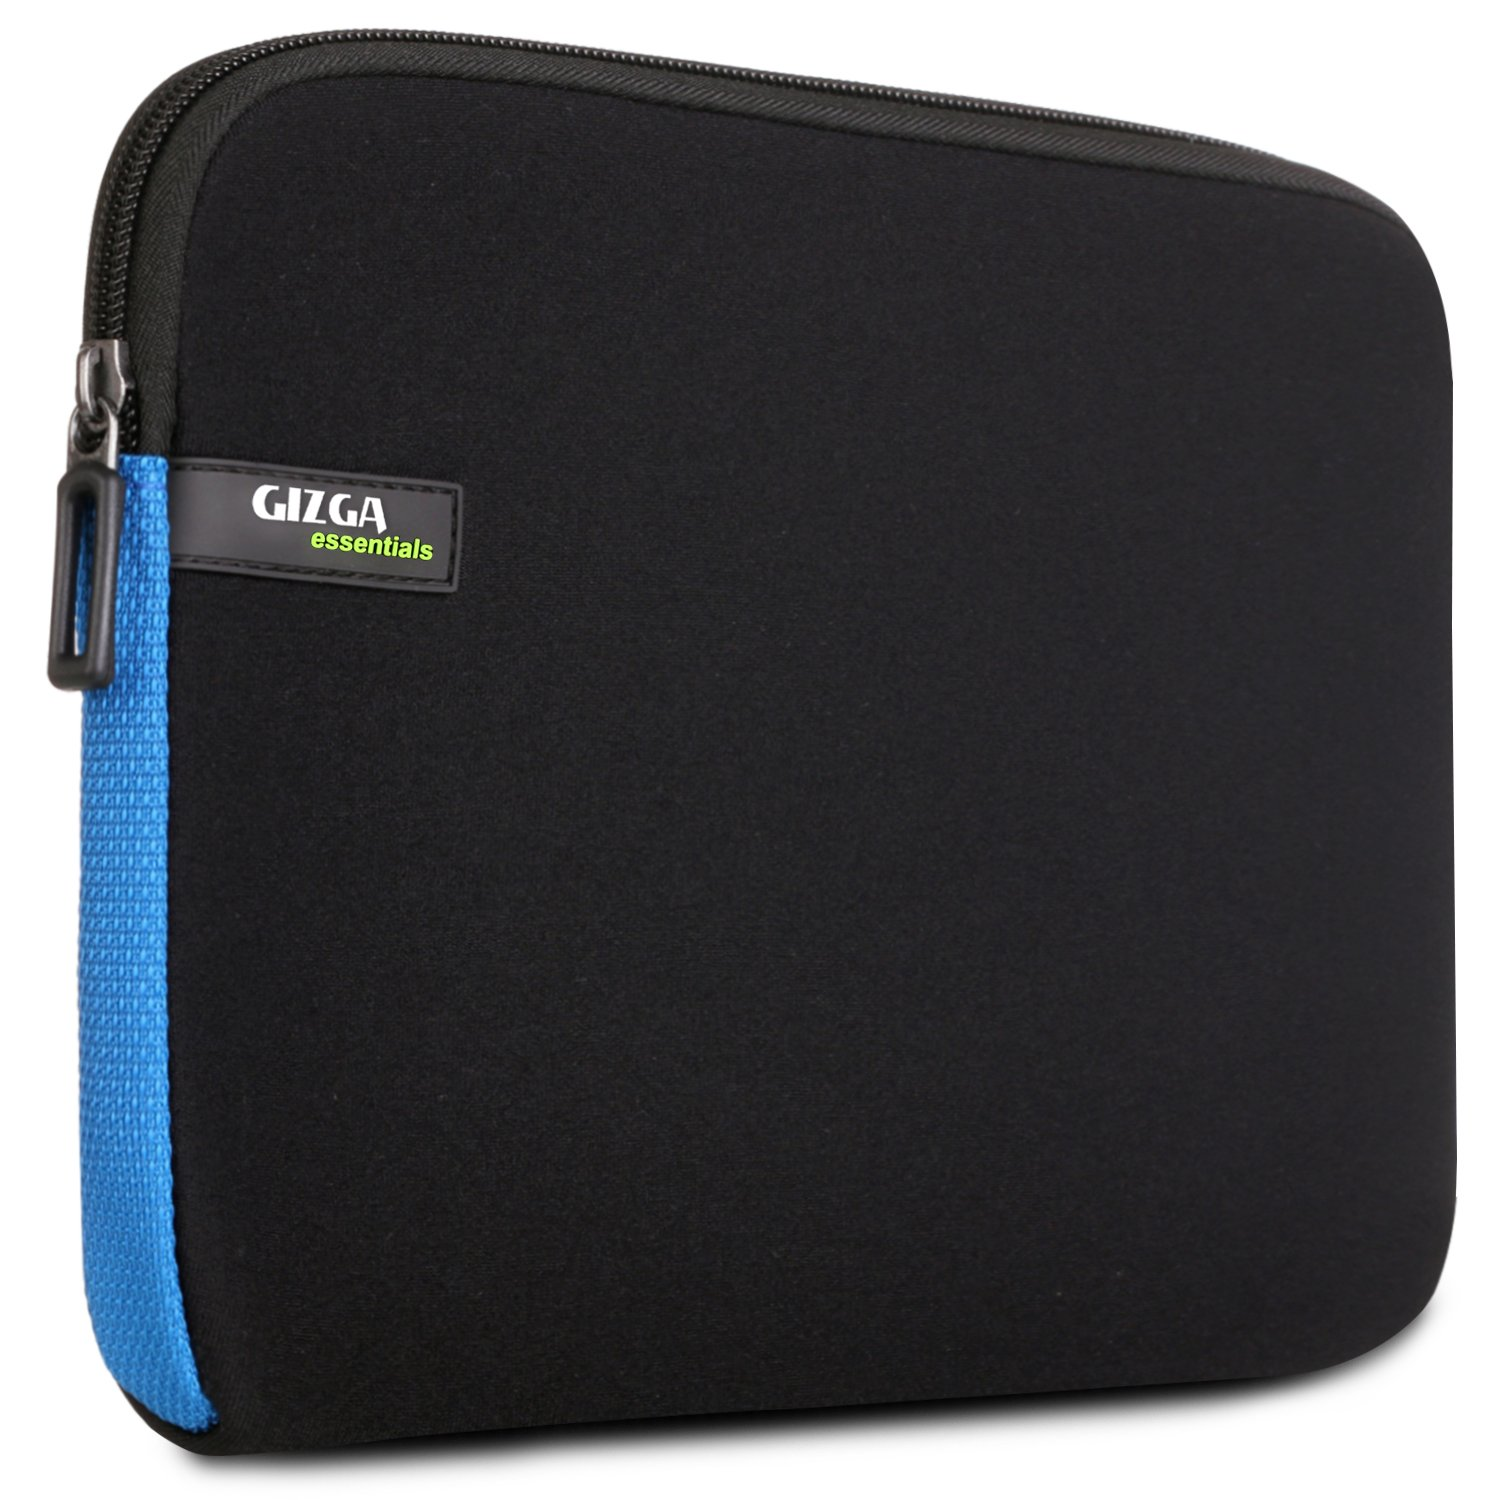 Gizga Essentials GE-15 15.6-Inch Laptop Sleeve (Black and Blue) product image